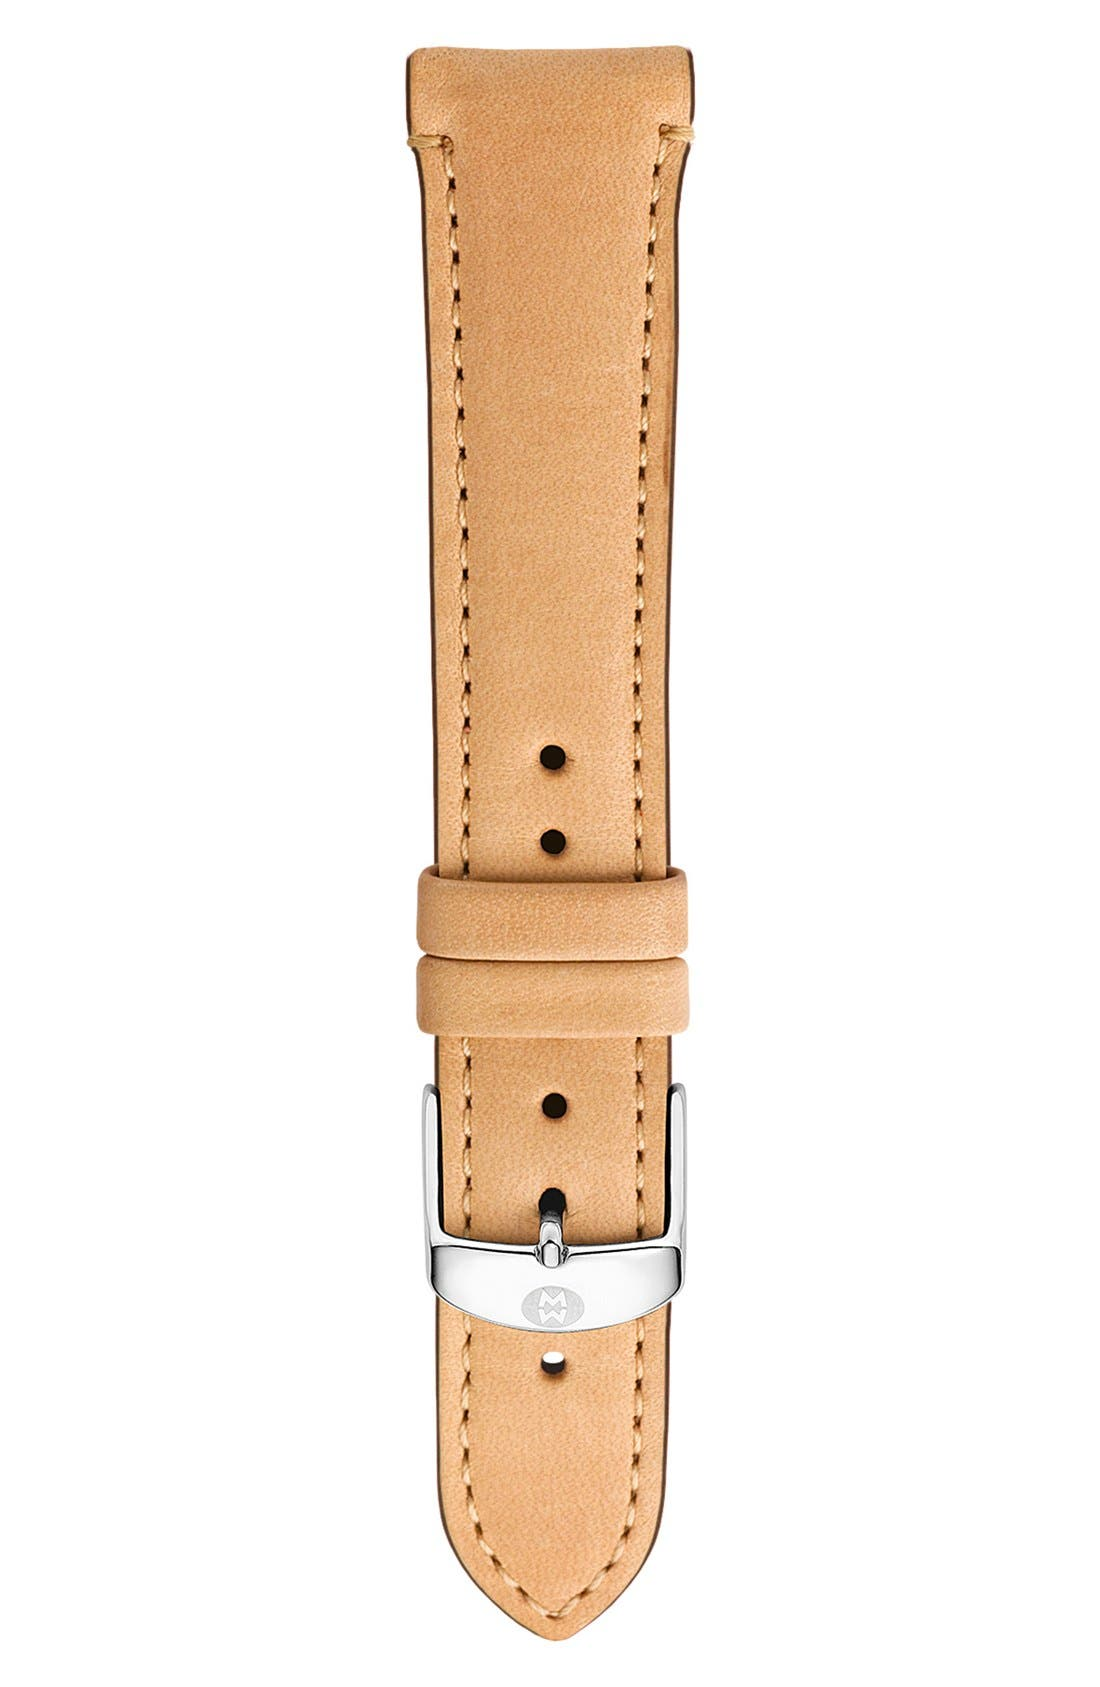 16mm Leather Watch Strap,                             Main thumbnail 1, color,                             Tan